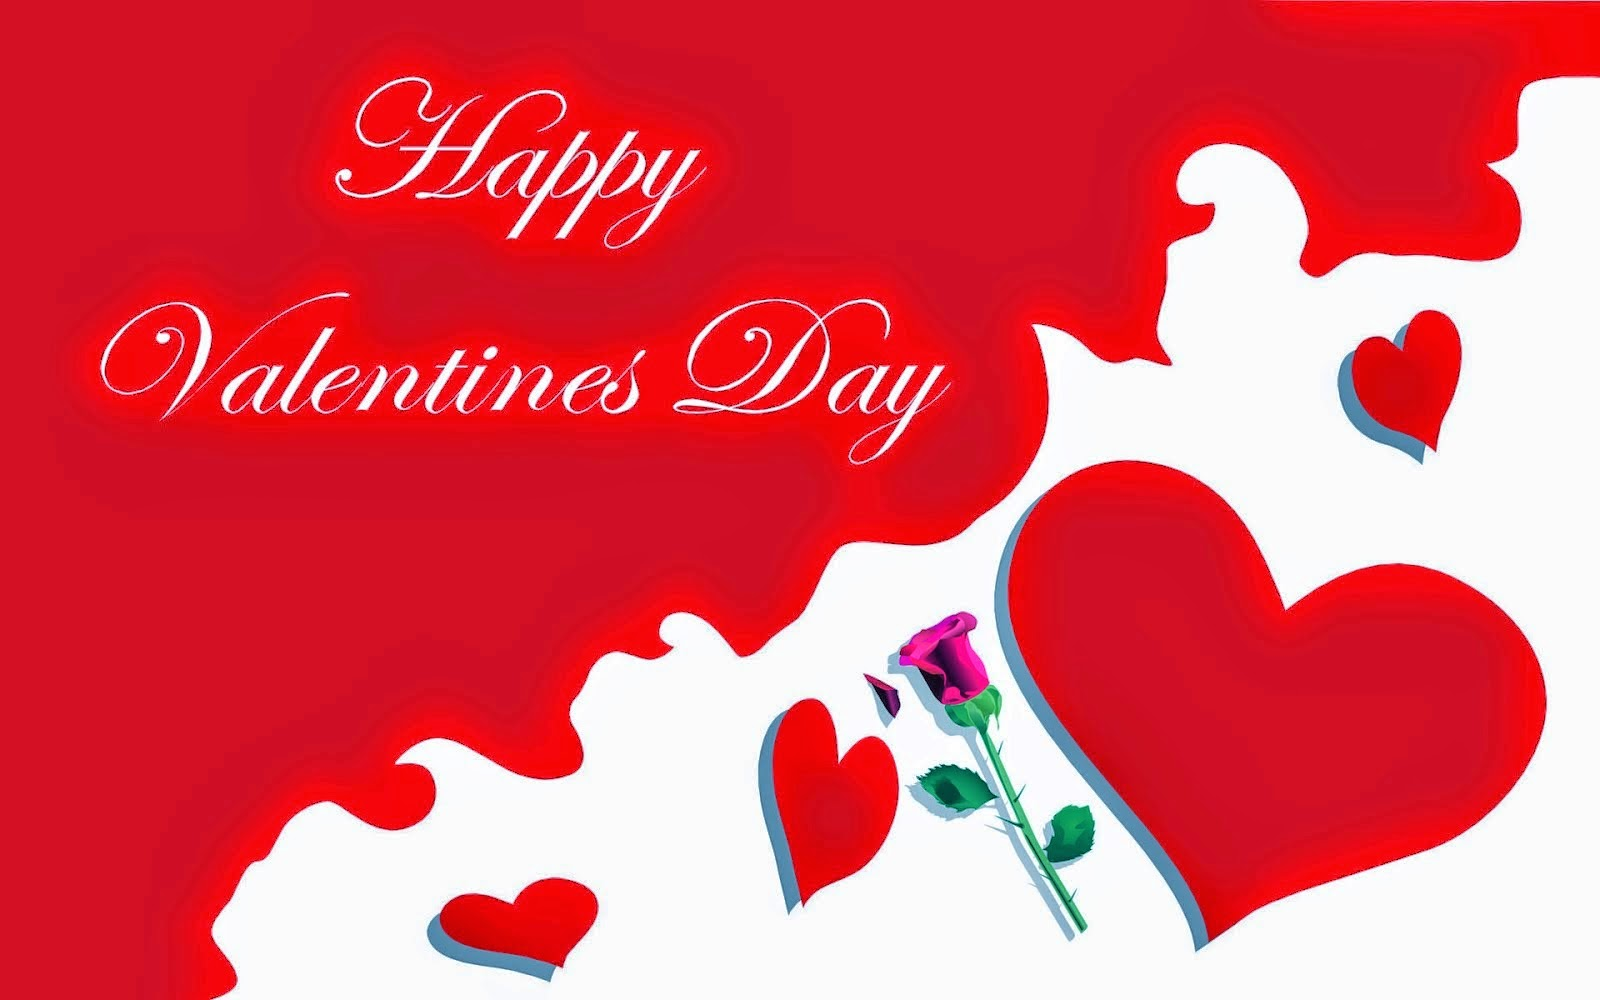 Beautiful Valentines day Wallpapers For Desktop Live HD Wallpaper HQ 1600x1000